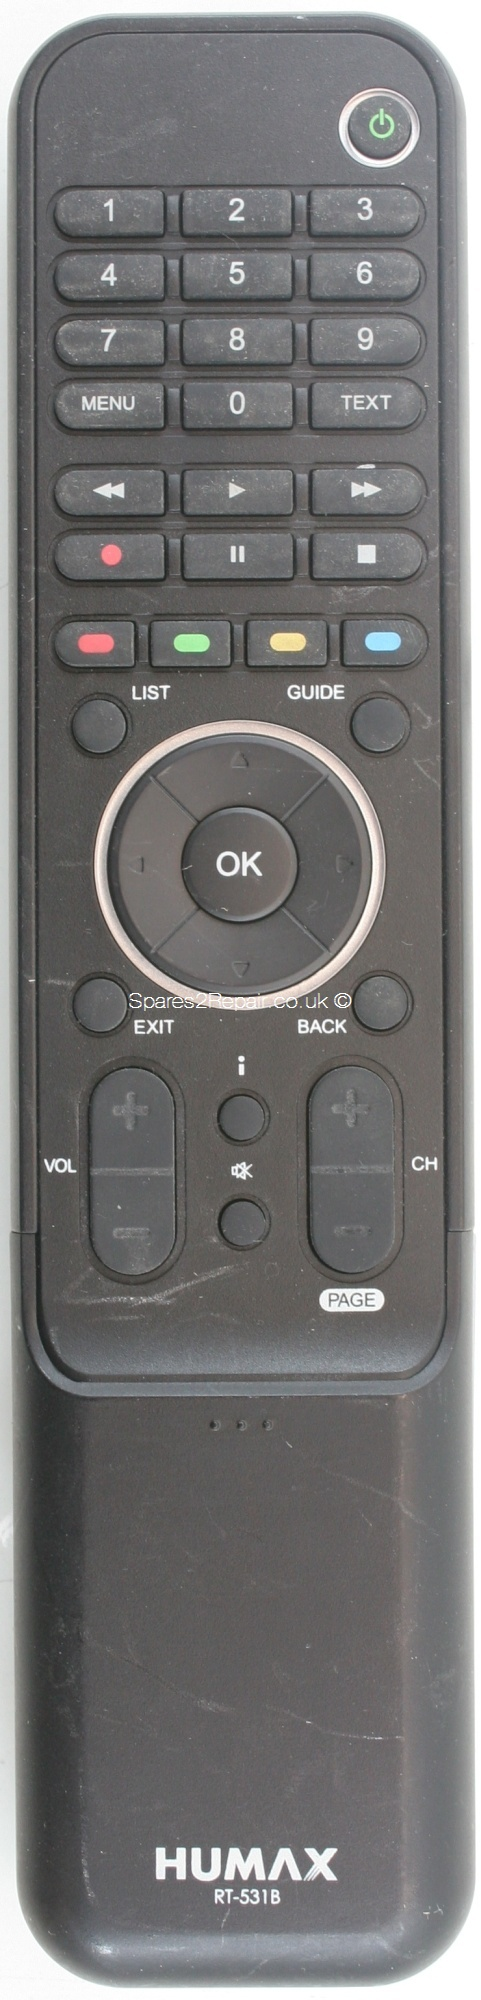 Humax RT-531B Remote Control (Original)